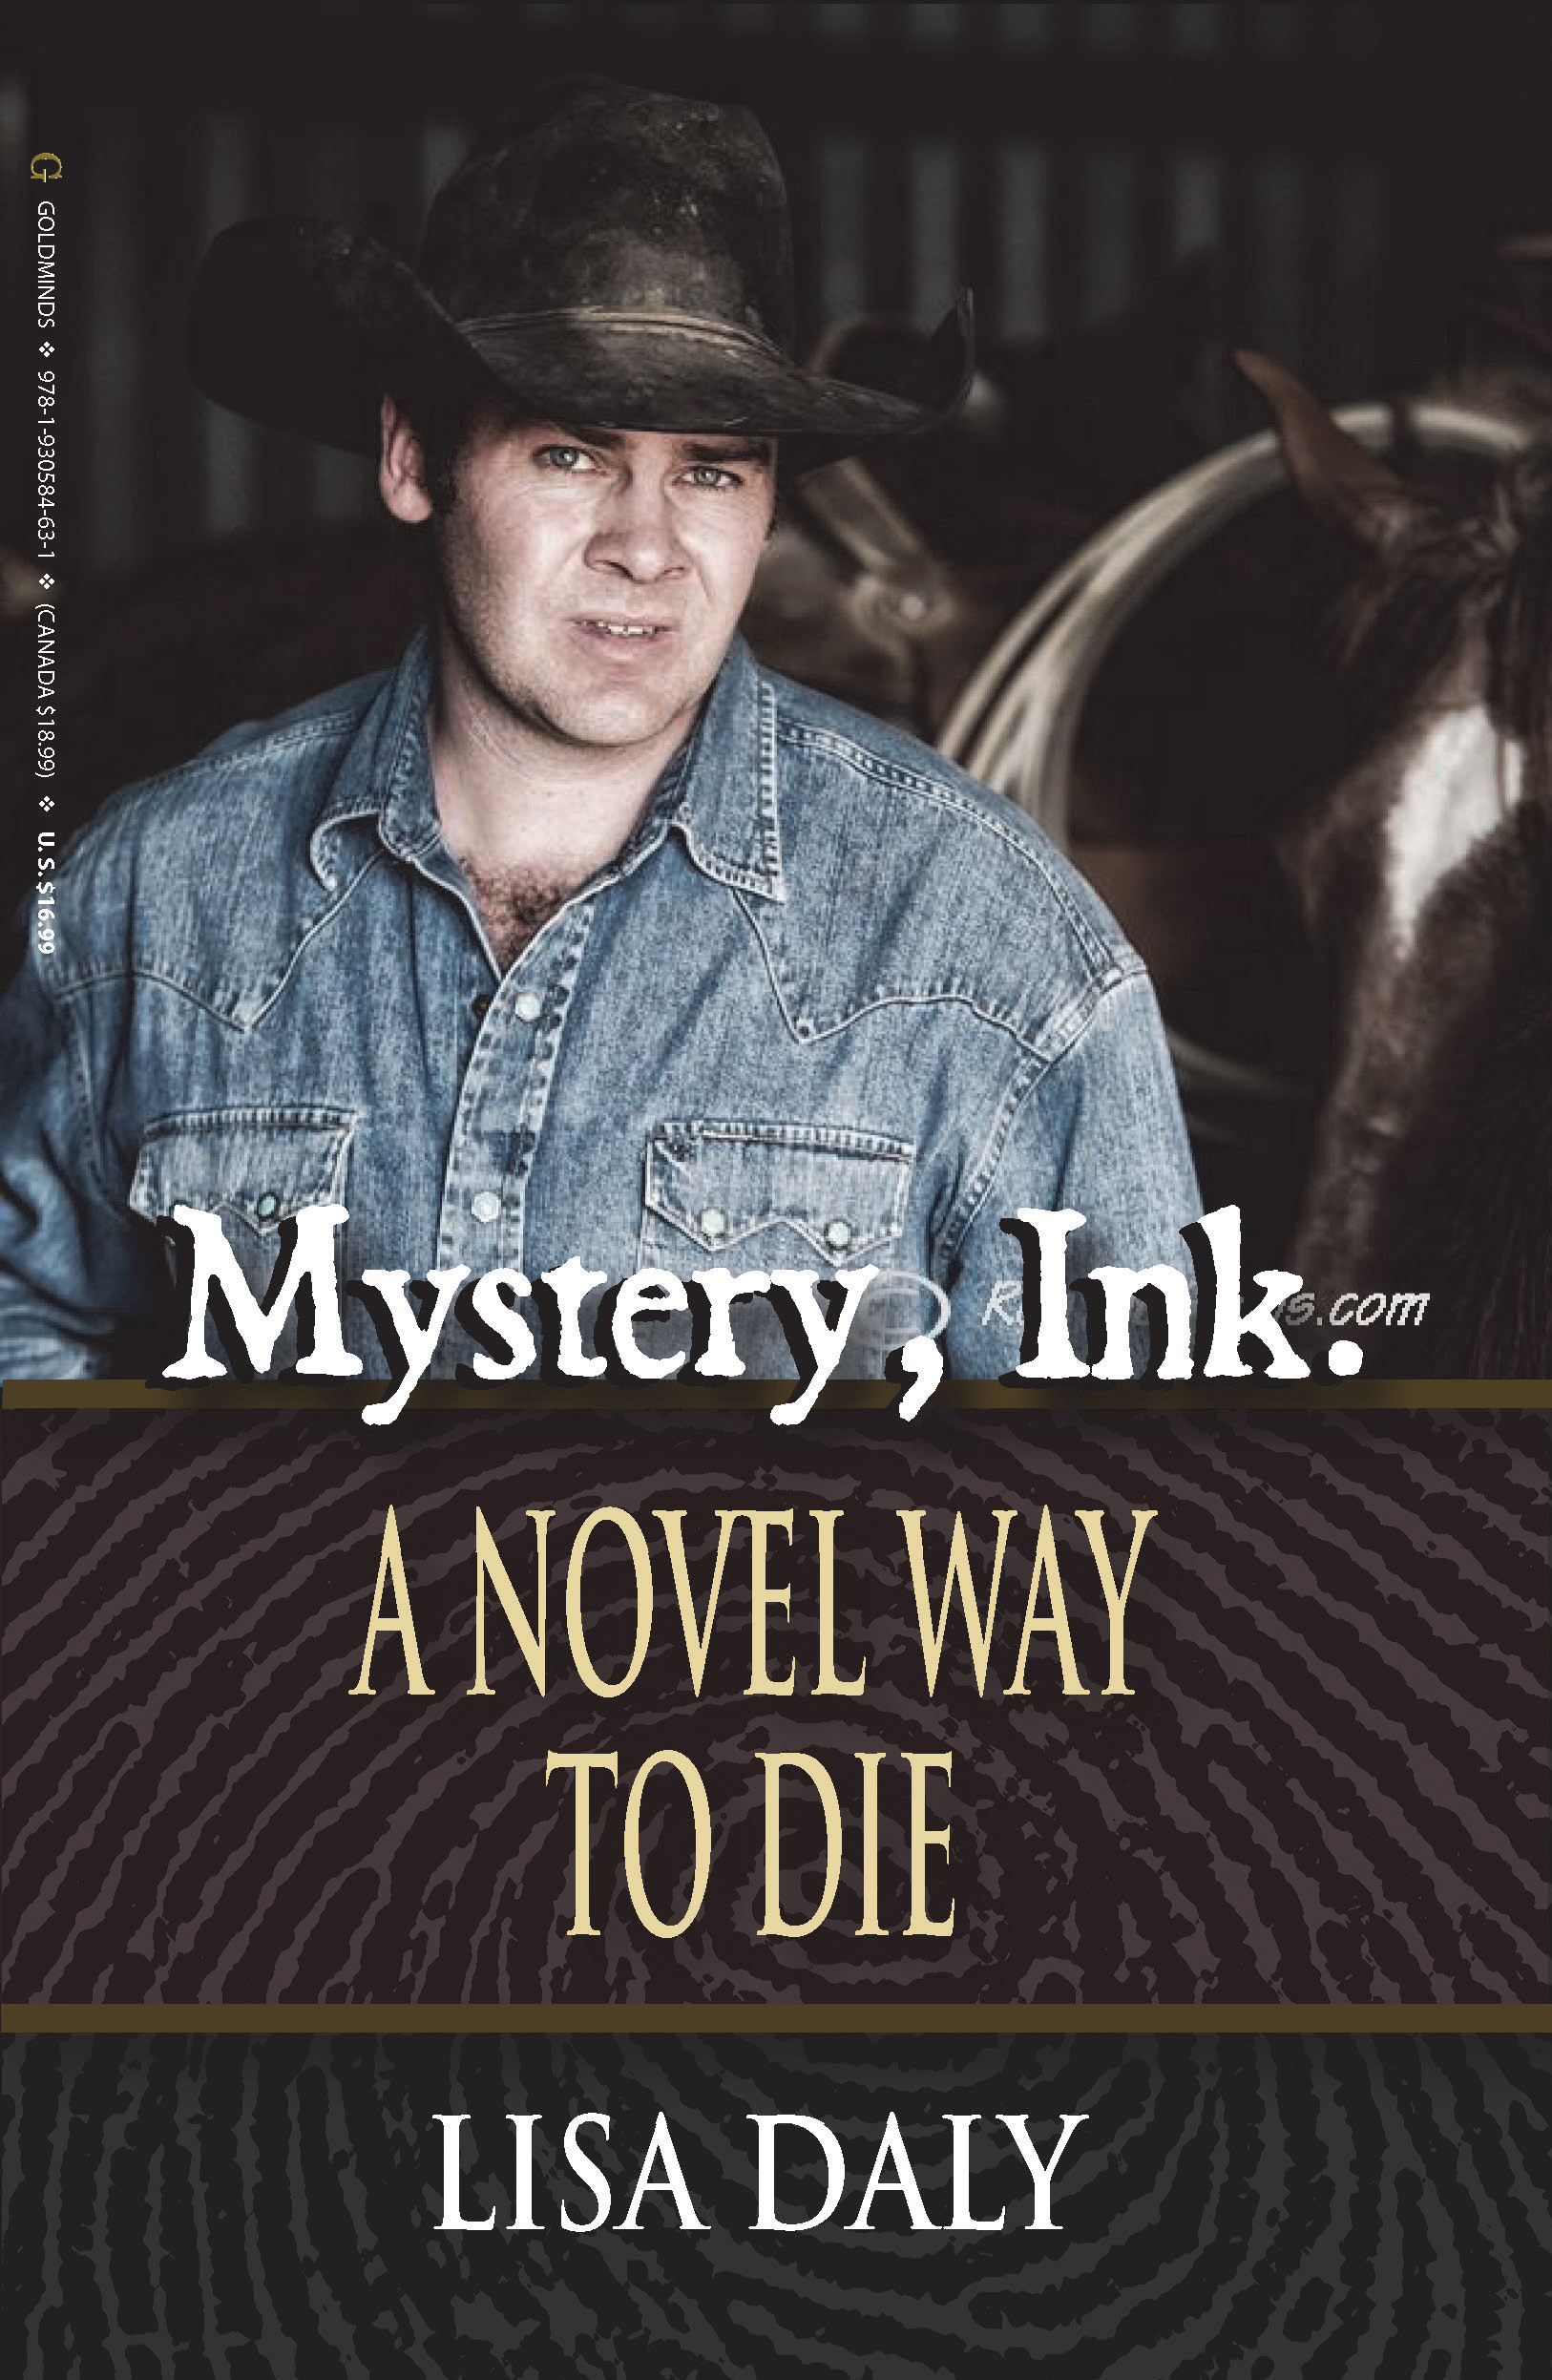 Mystery, Ink.: A Novel Way to Die